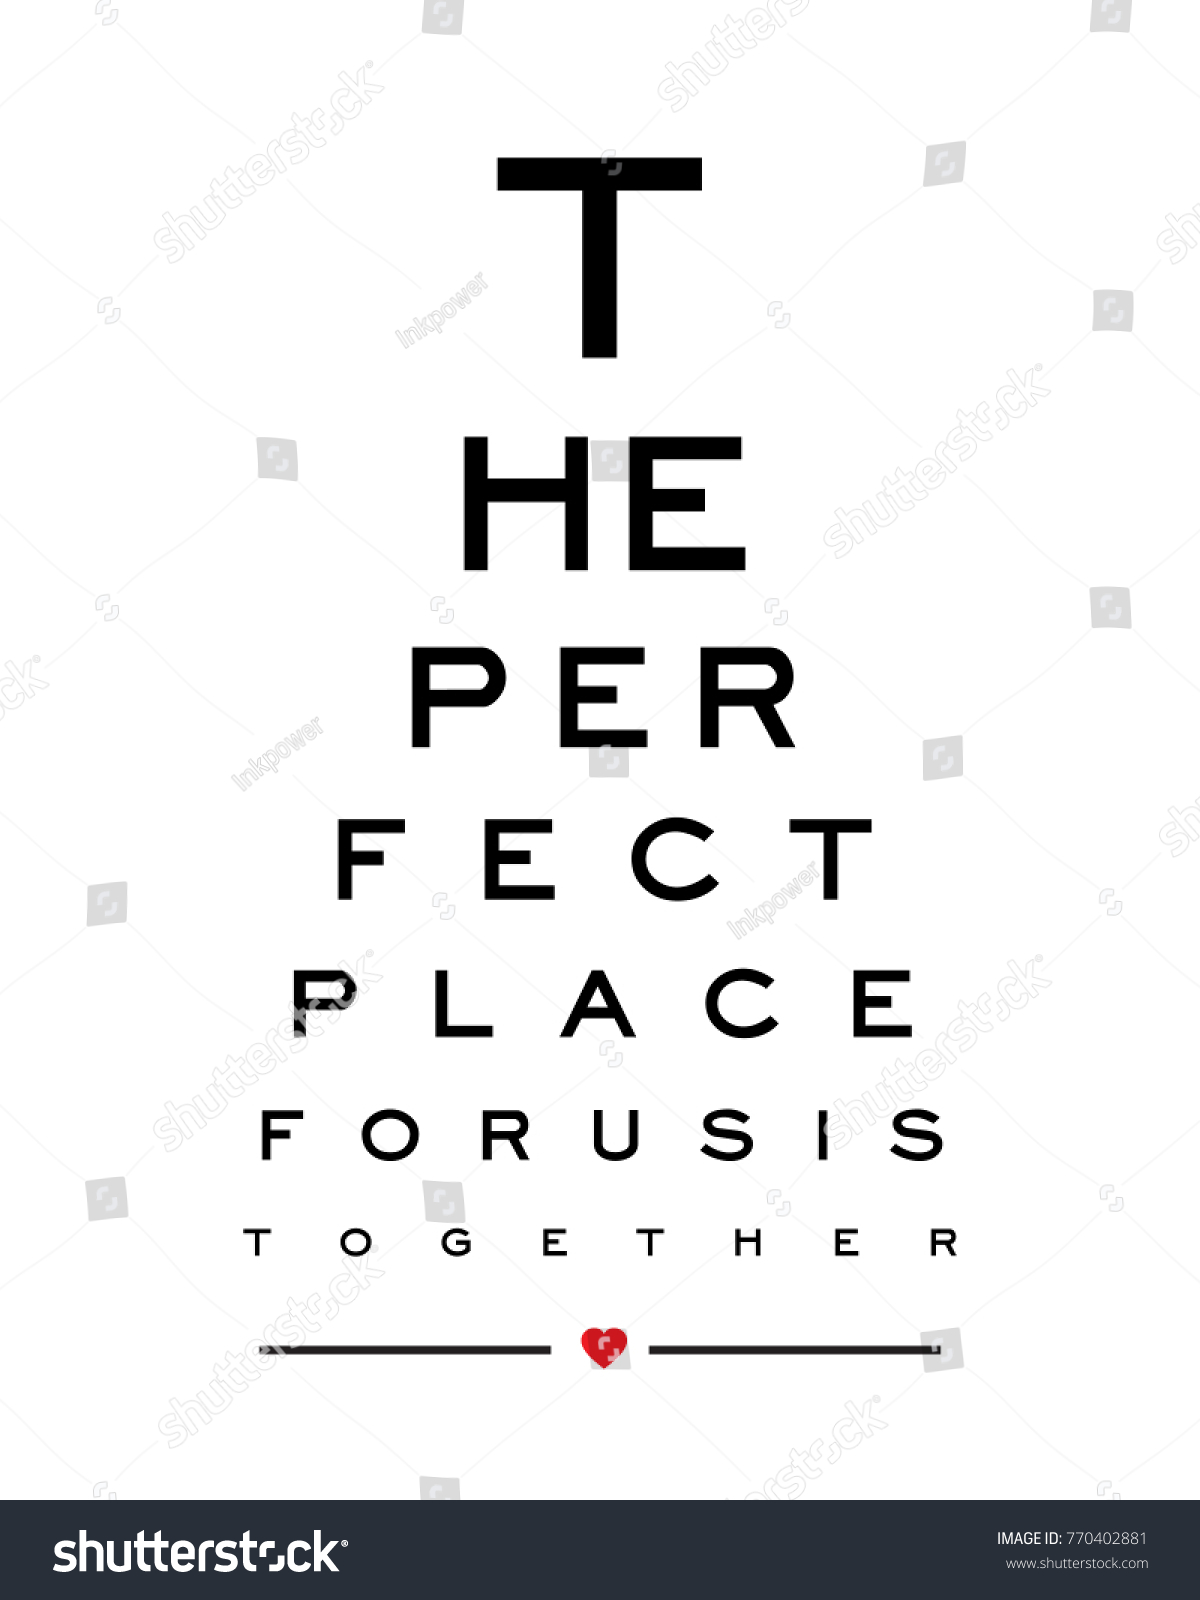 Eye test charts printable gallery free any chart examples printable eye chart free image collections free any chart examples eye exam charts printable gallery free nvjuhfo Choice Image